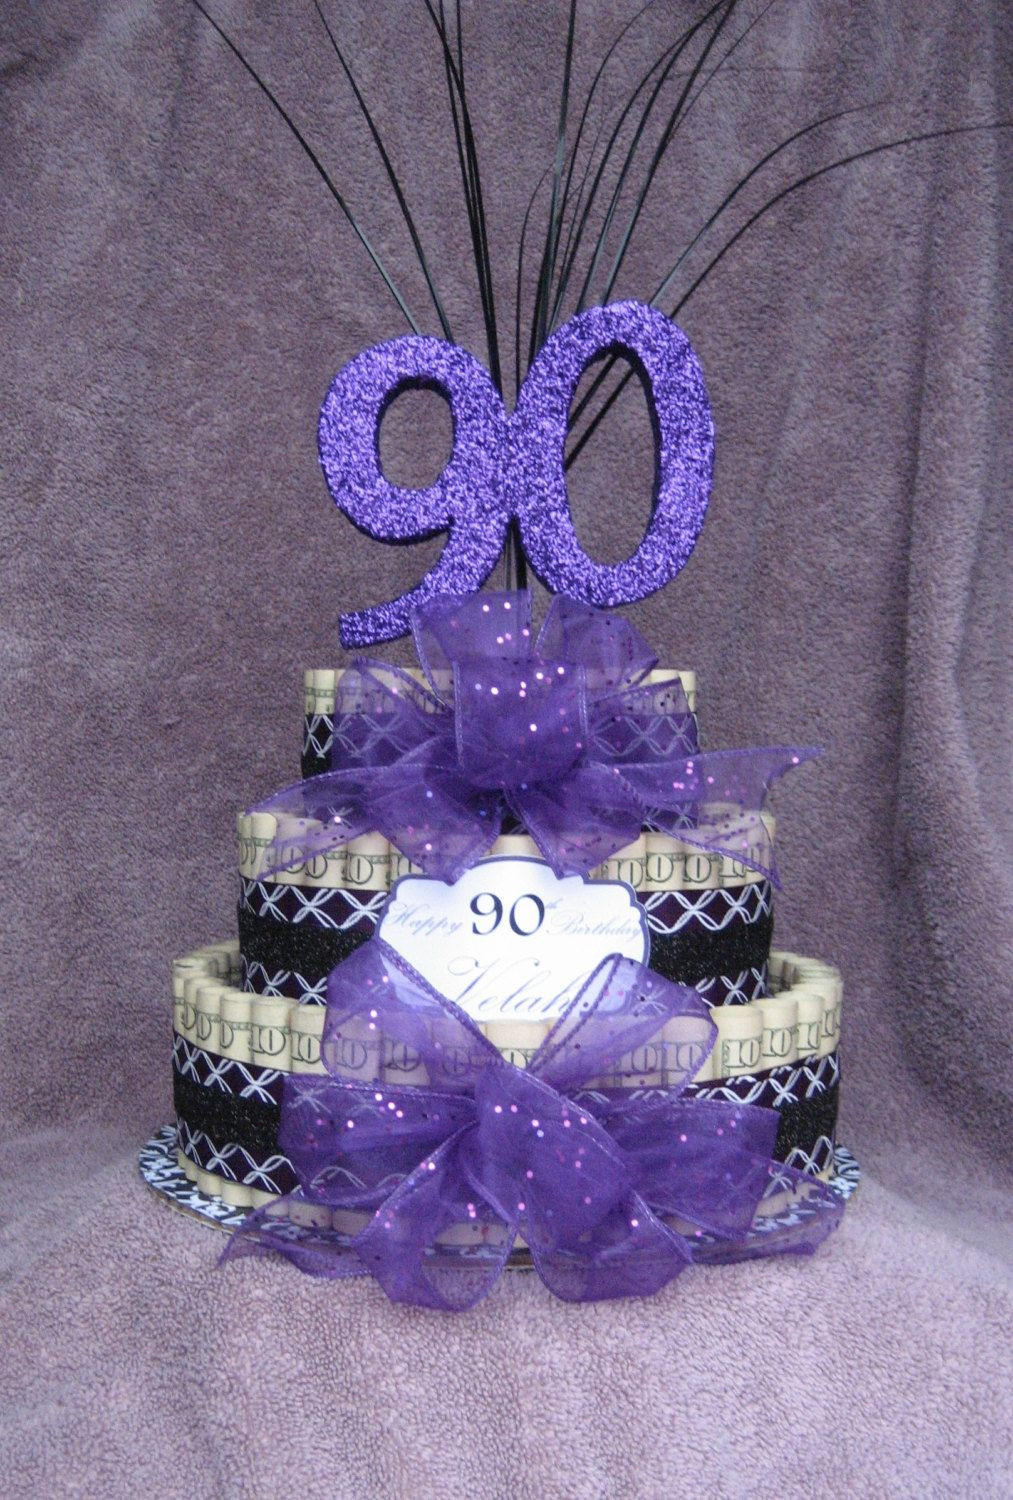 Best ideas about Birthday Return Gifts Under $5 . Save or Pin Money Cakes from Creative Creations by MC Is a great Now.